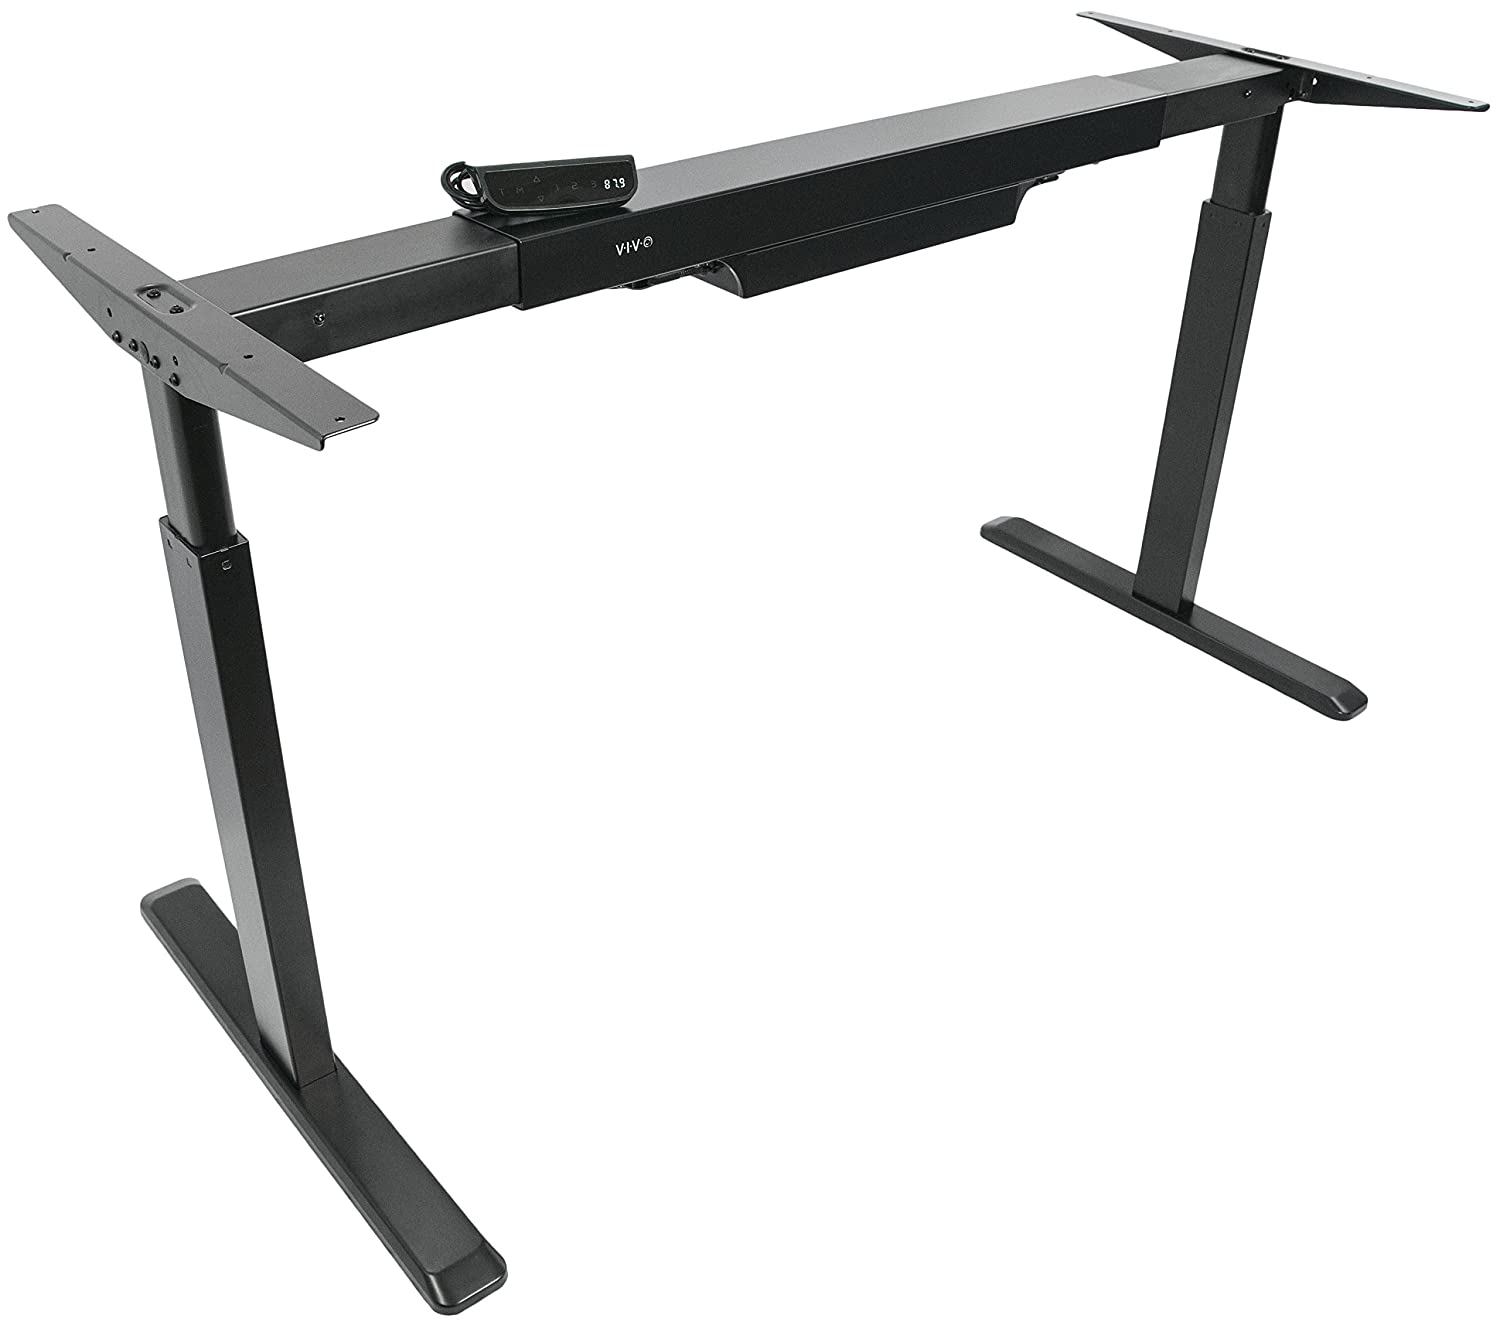 Amazon.com : VIVO Electric Stand Up Desk Frame Only Solid Steel W/ Single  Motor Ergonomic Standing Height Adjustable (DESK V101E) : Office Products